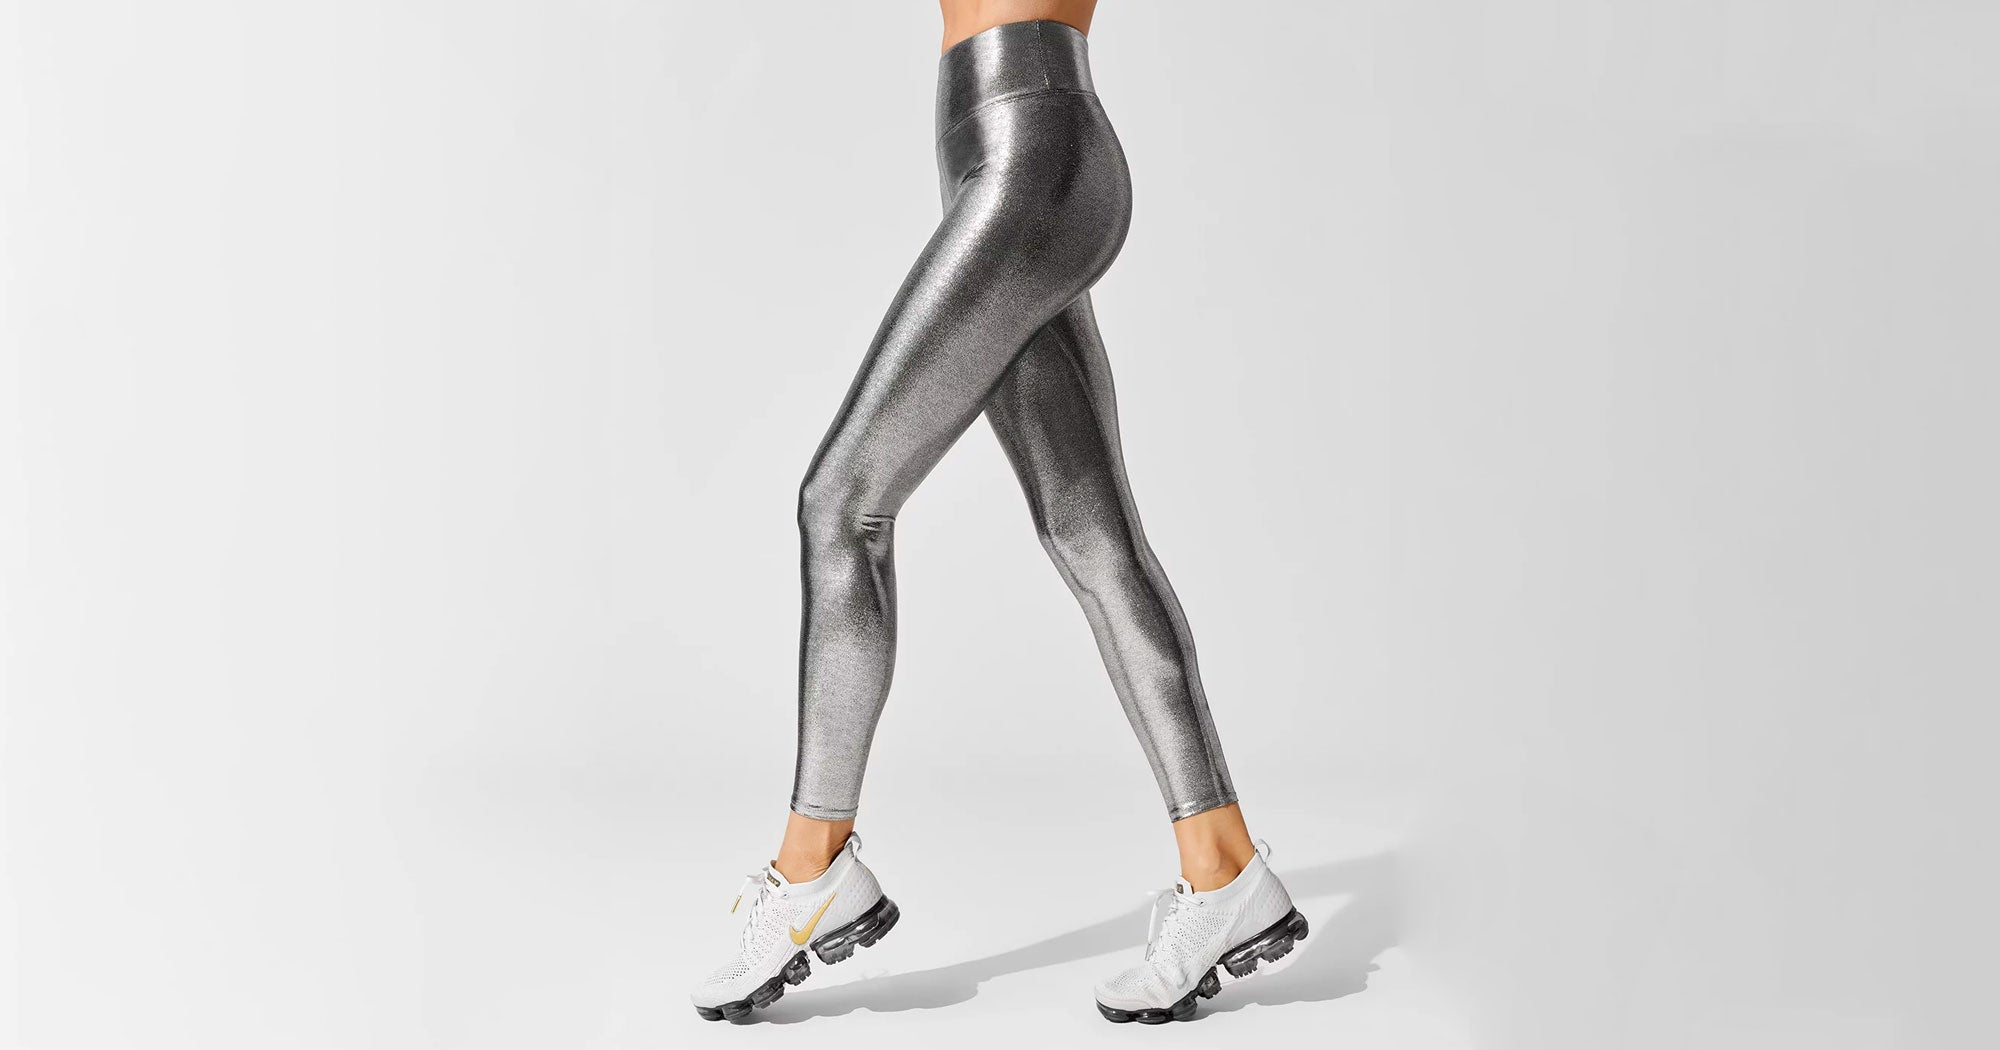 The Best Workout Leggings To Try, According To Your Zodiac Sign